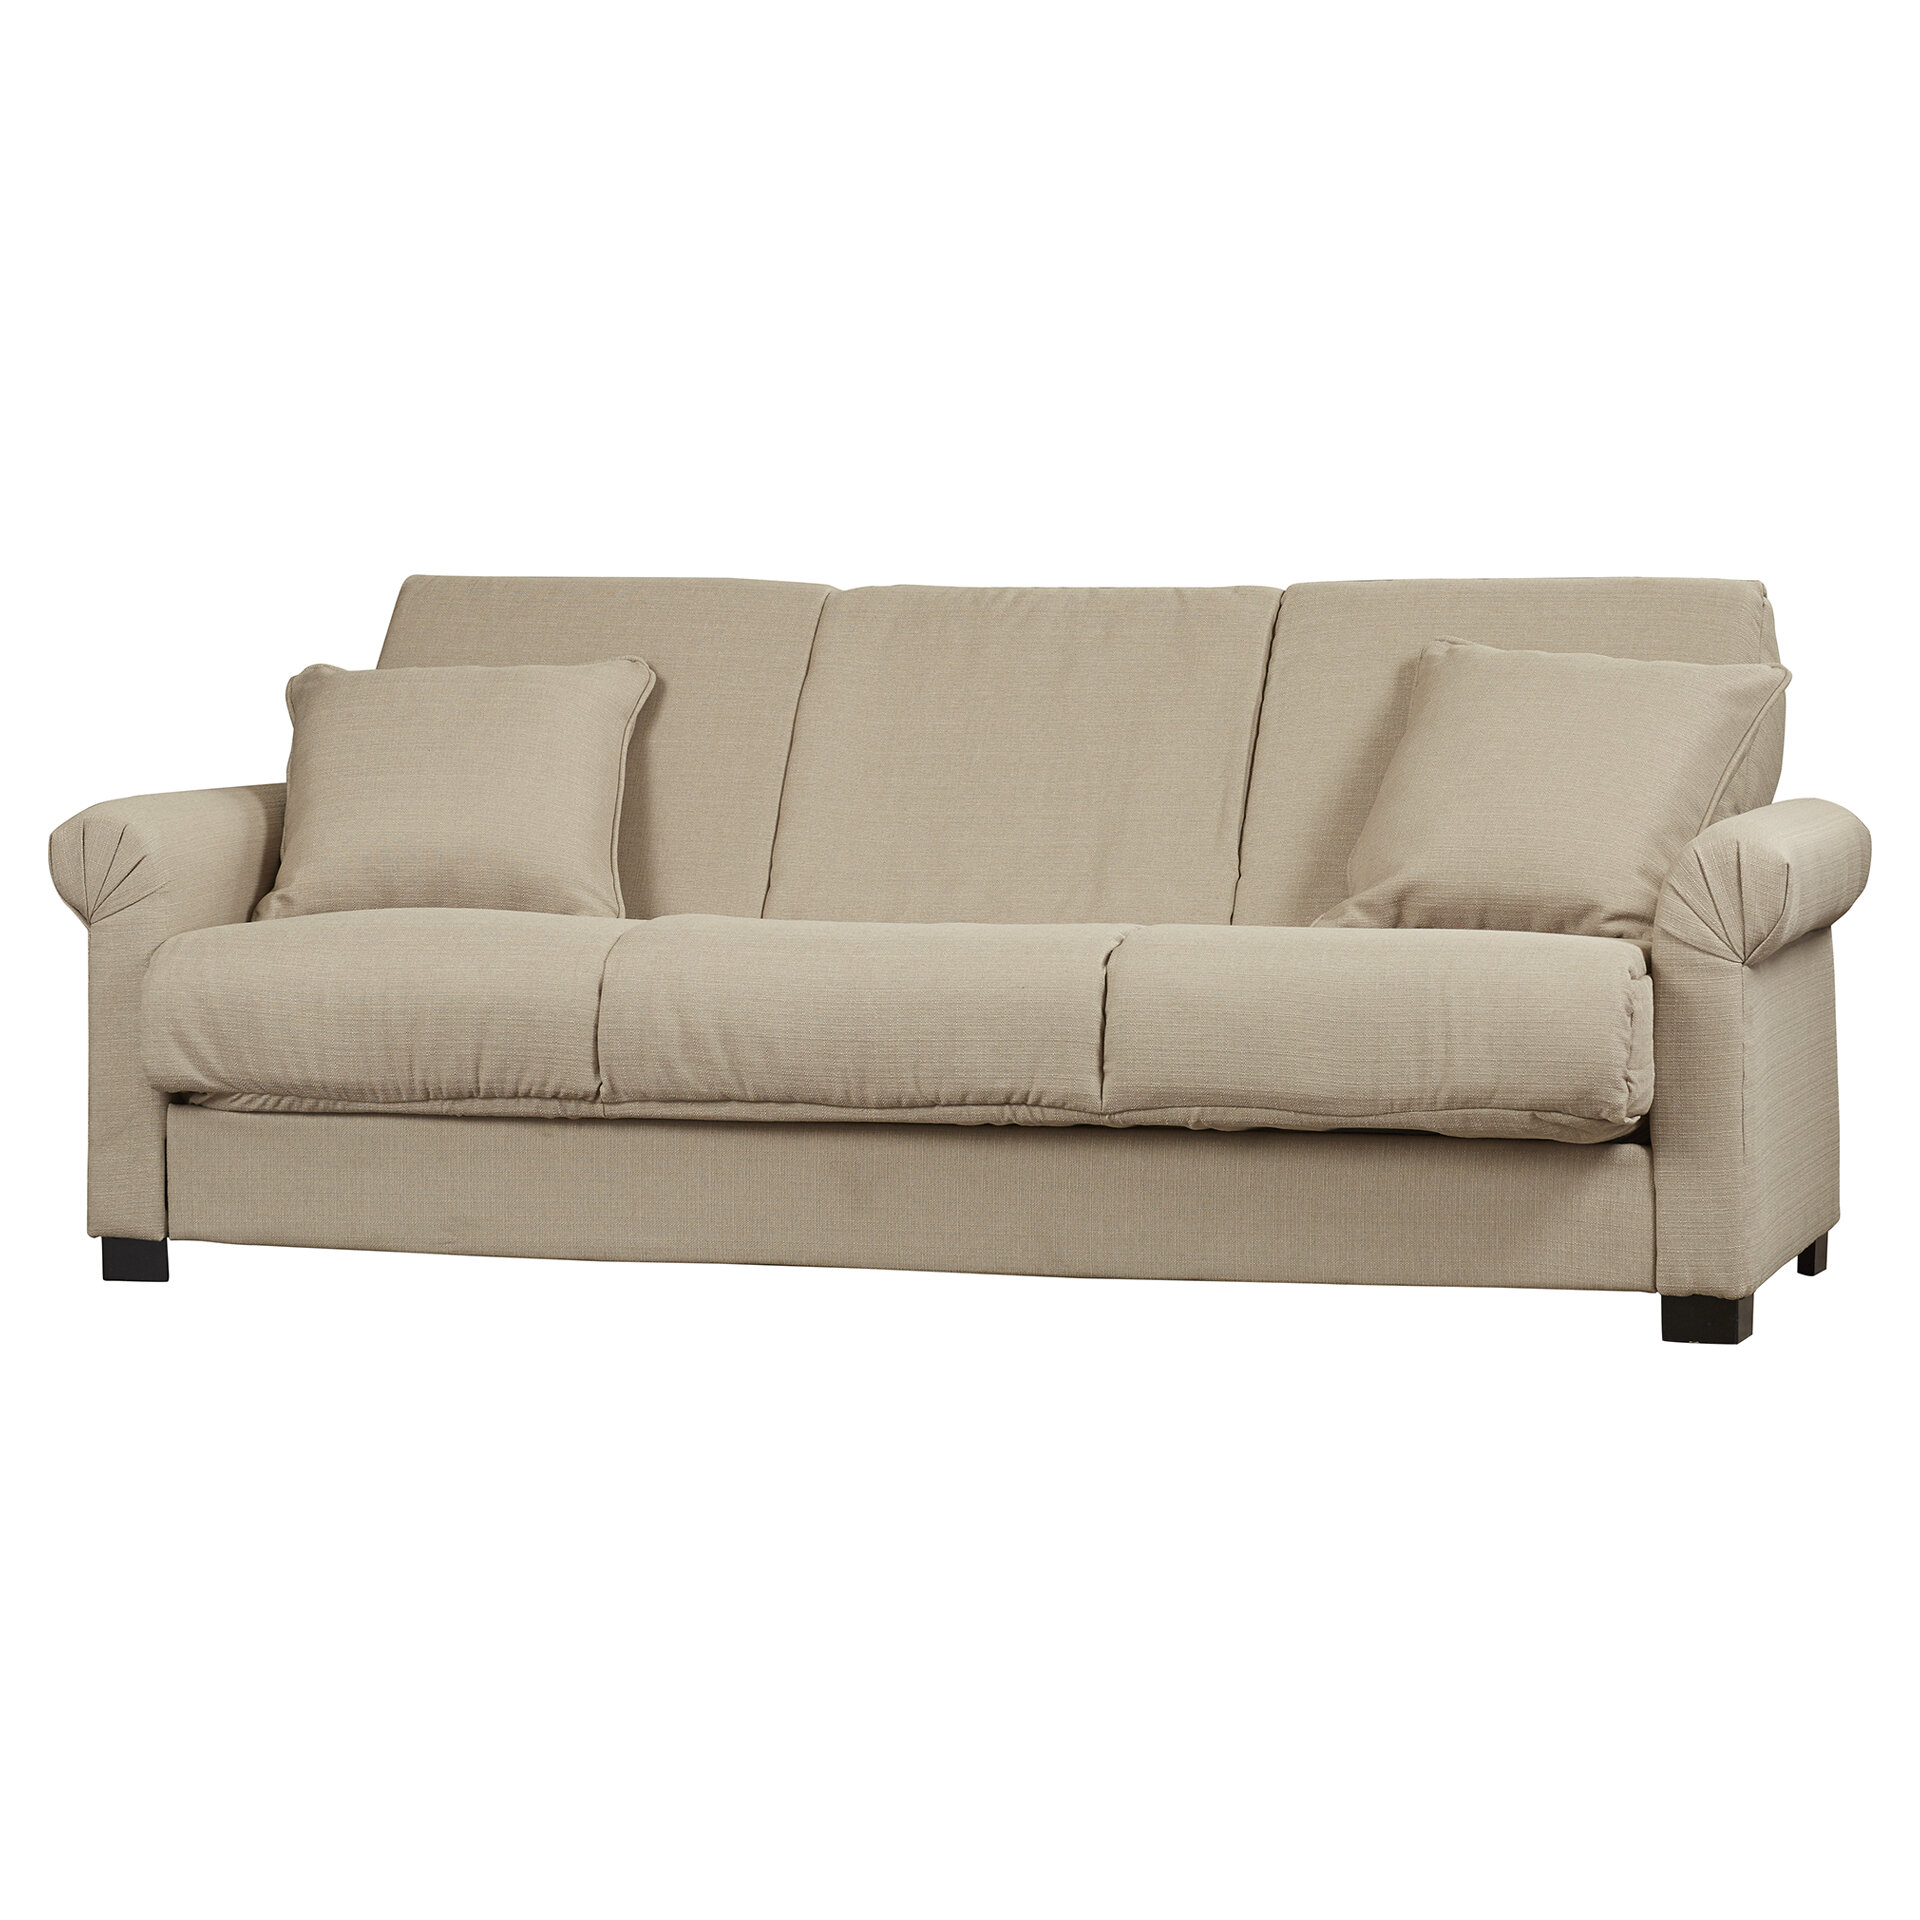 alcott hill lawrence full convertible sleeper sofa reviews wayfair